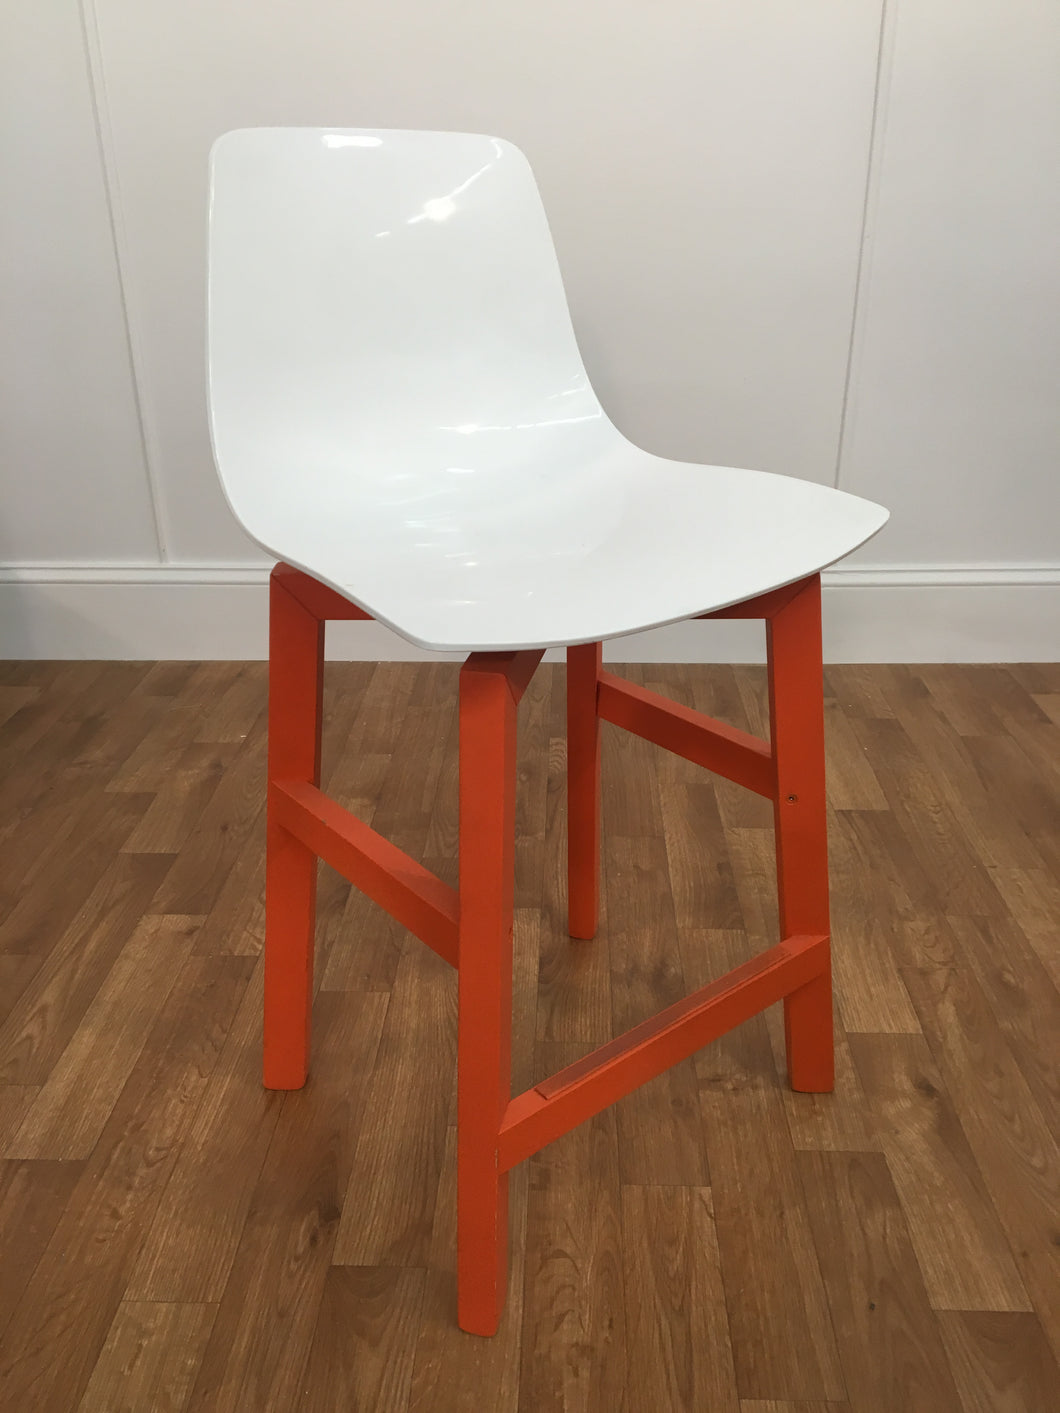 WHITE PLASTIC BACK STOOL WITH ORANGE WOODEN LEGS